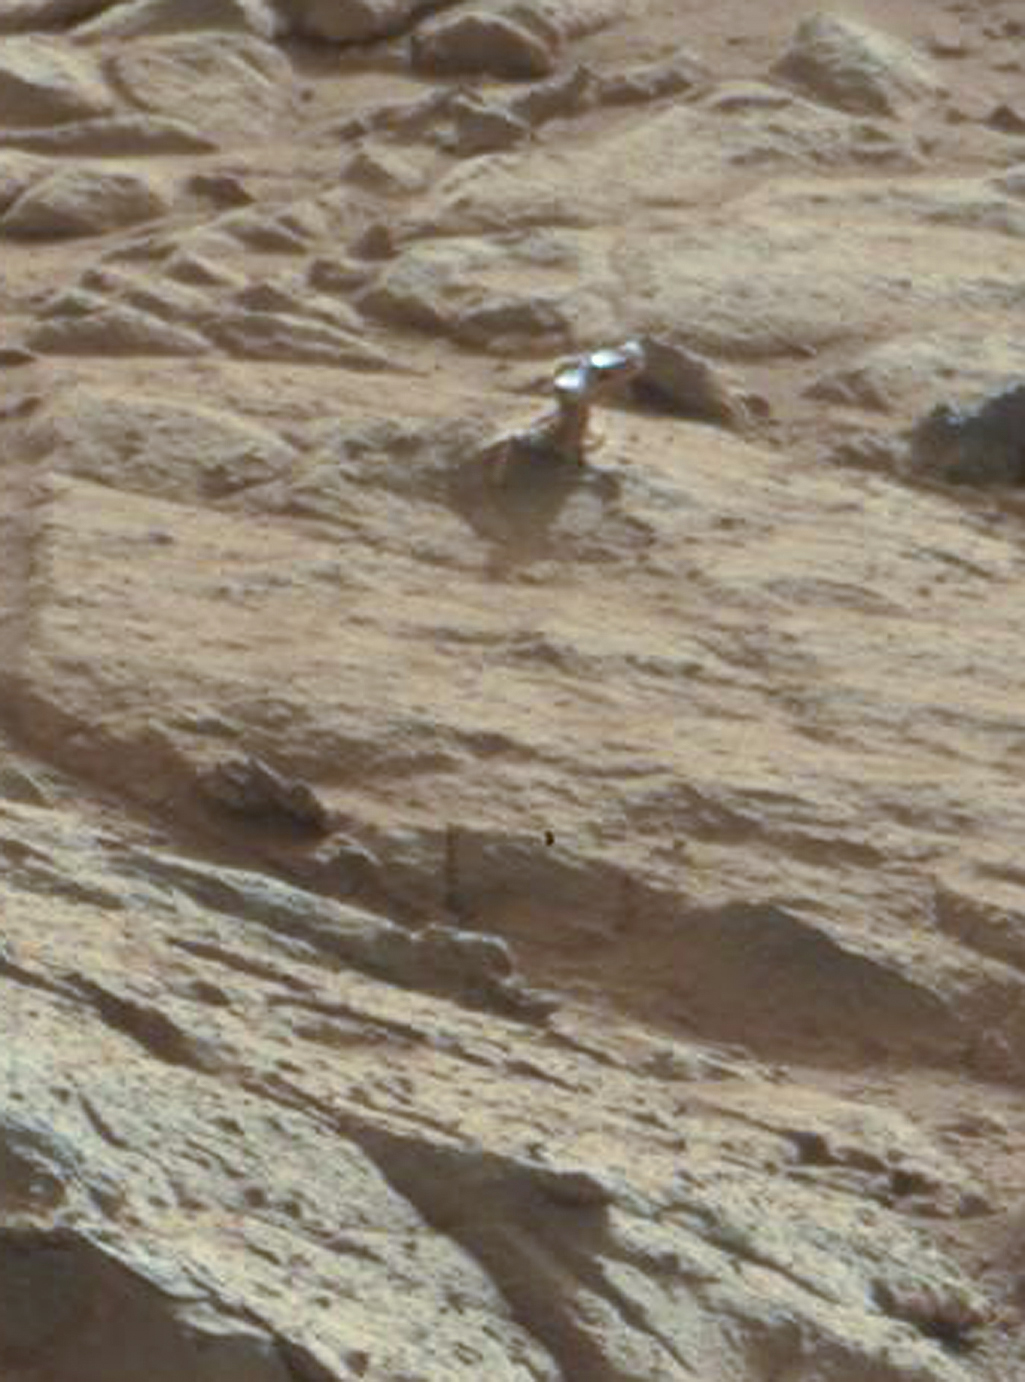 Scientist Explains the Weird Shiny Thing on Mars